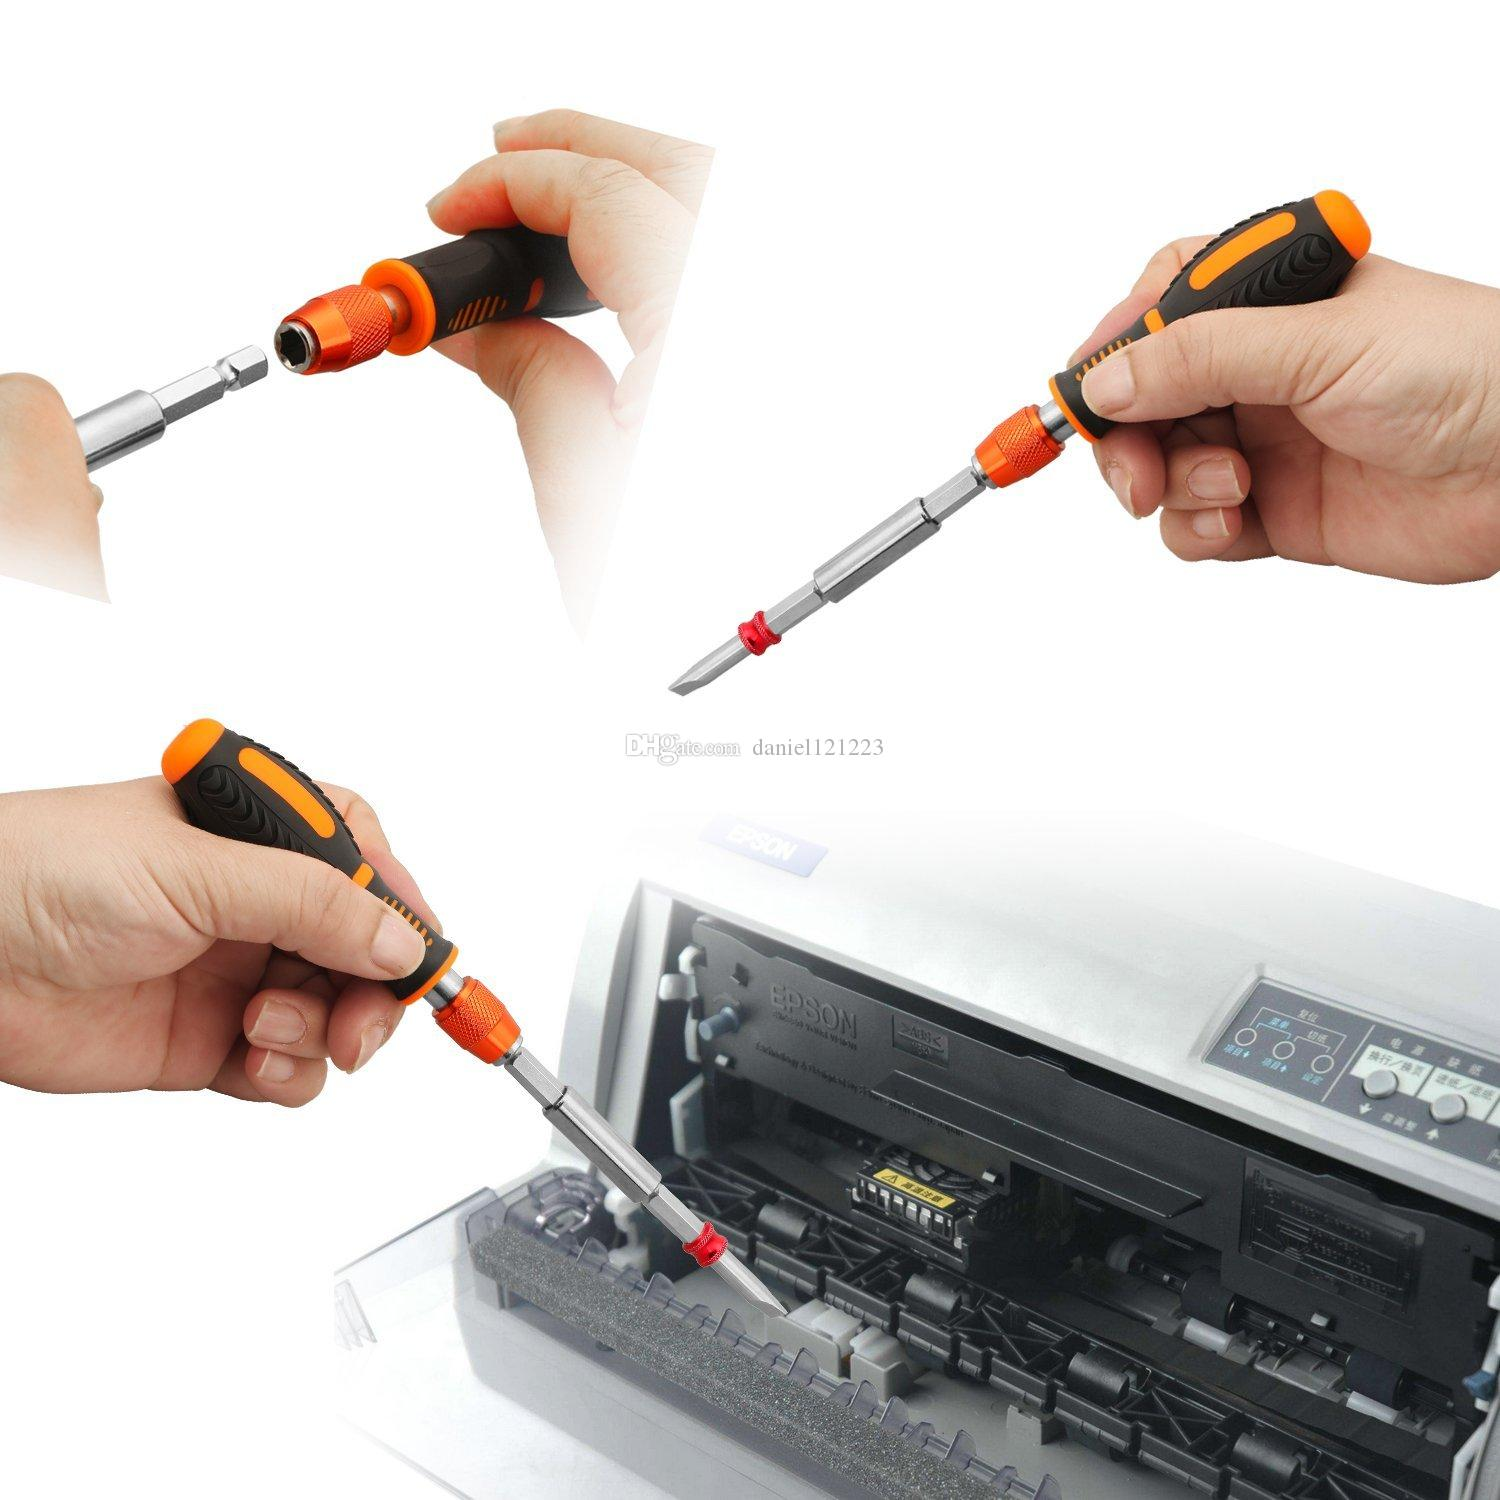 12 in 1 Magnetic Screwdriver Set includes 10 Strong Magnetic Bits, Anti-slip Rubber Handle, 1/4'' Hex Bit Holder